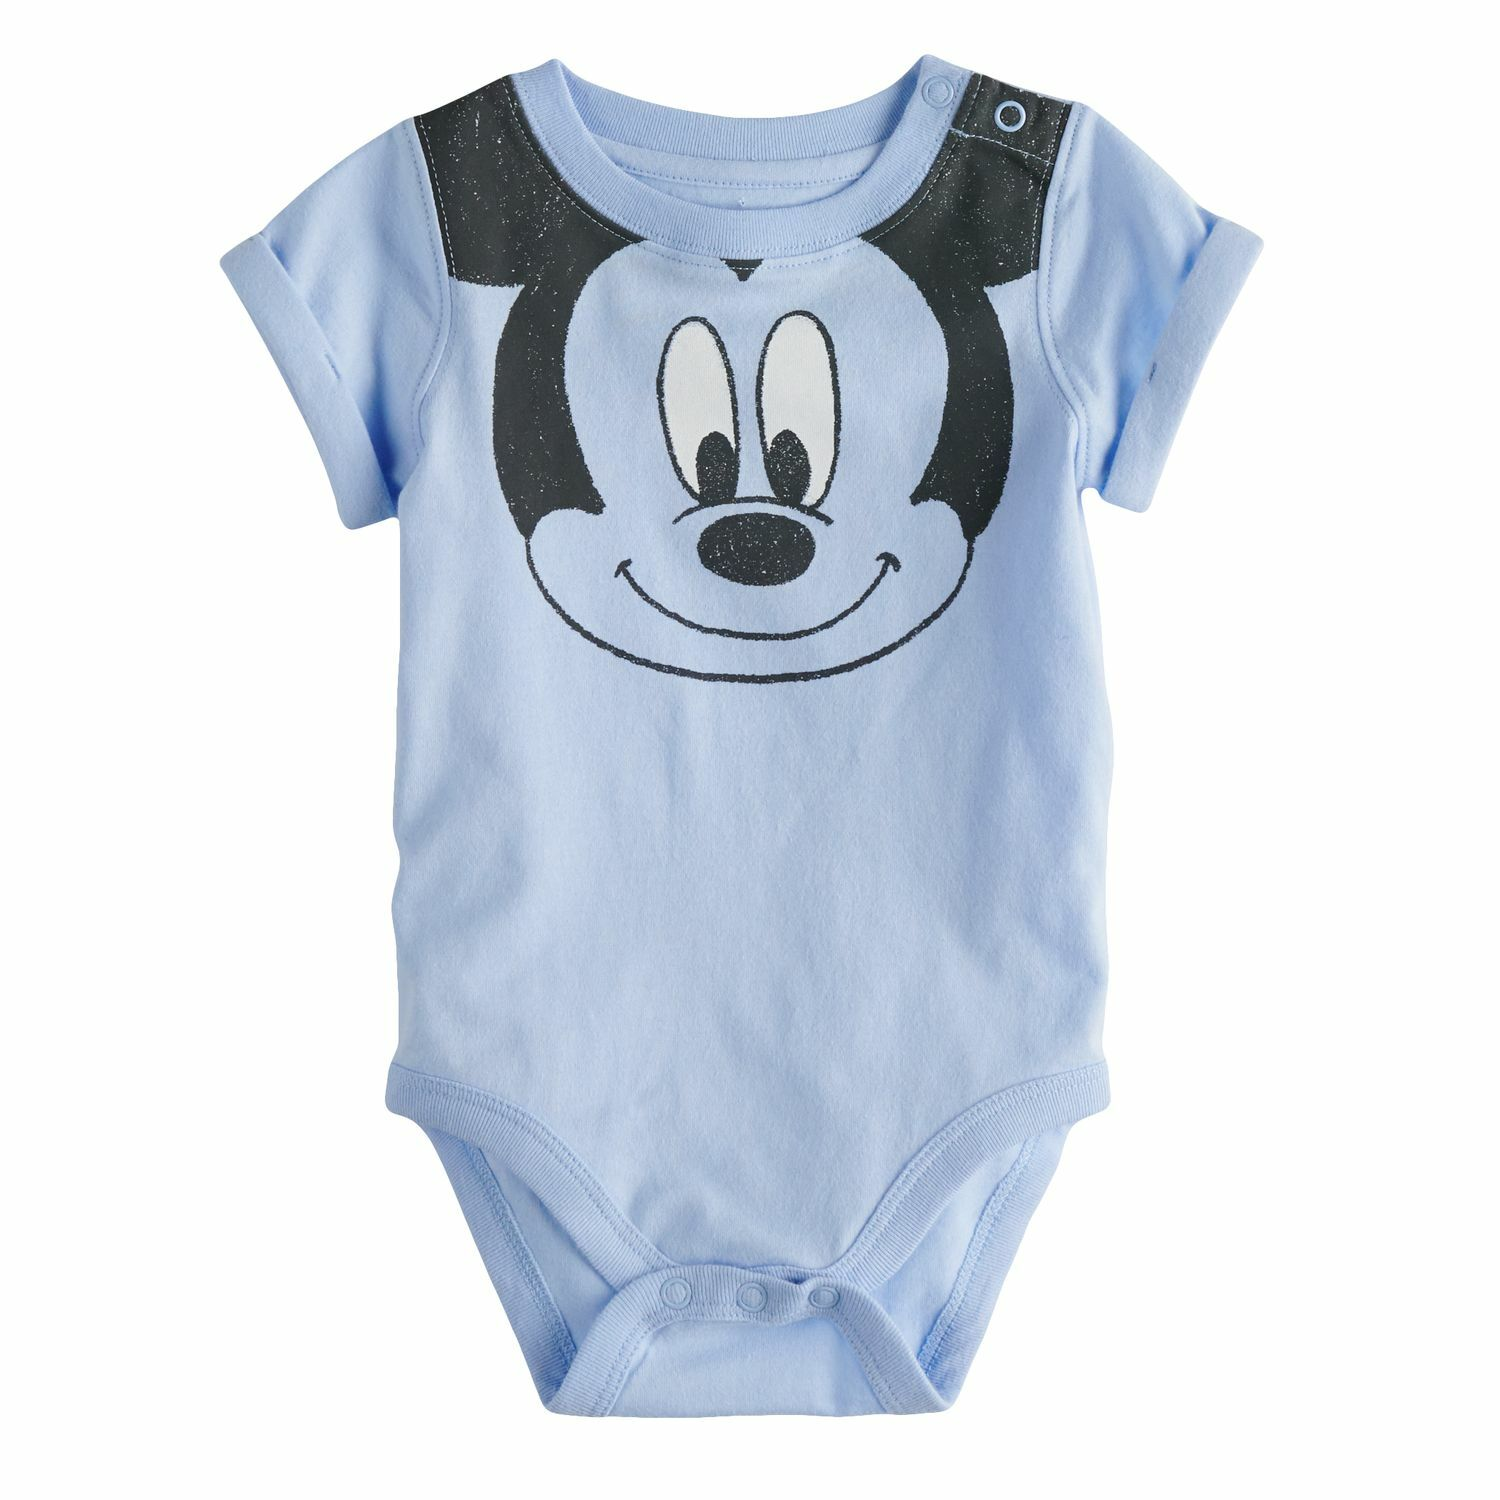 a36d33228 Disney's Mickey Mouse Baby Boy Smile Graphic Bodysuit by Jumping Beans